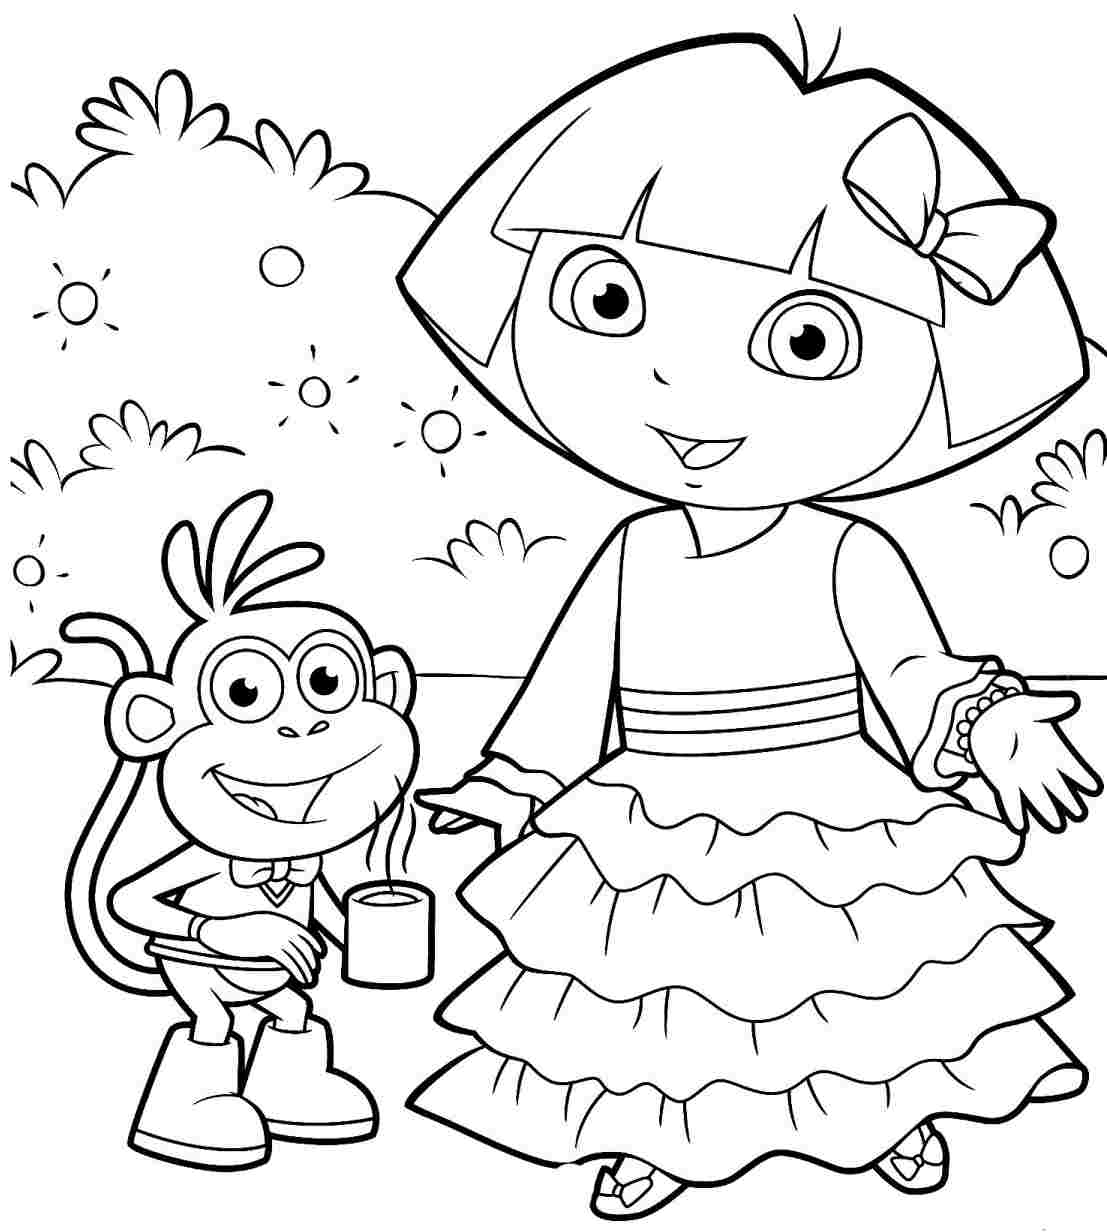 dora colouring pages dora coloring pages games at getdrawings free download dora colouring pages